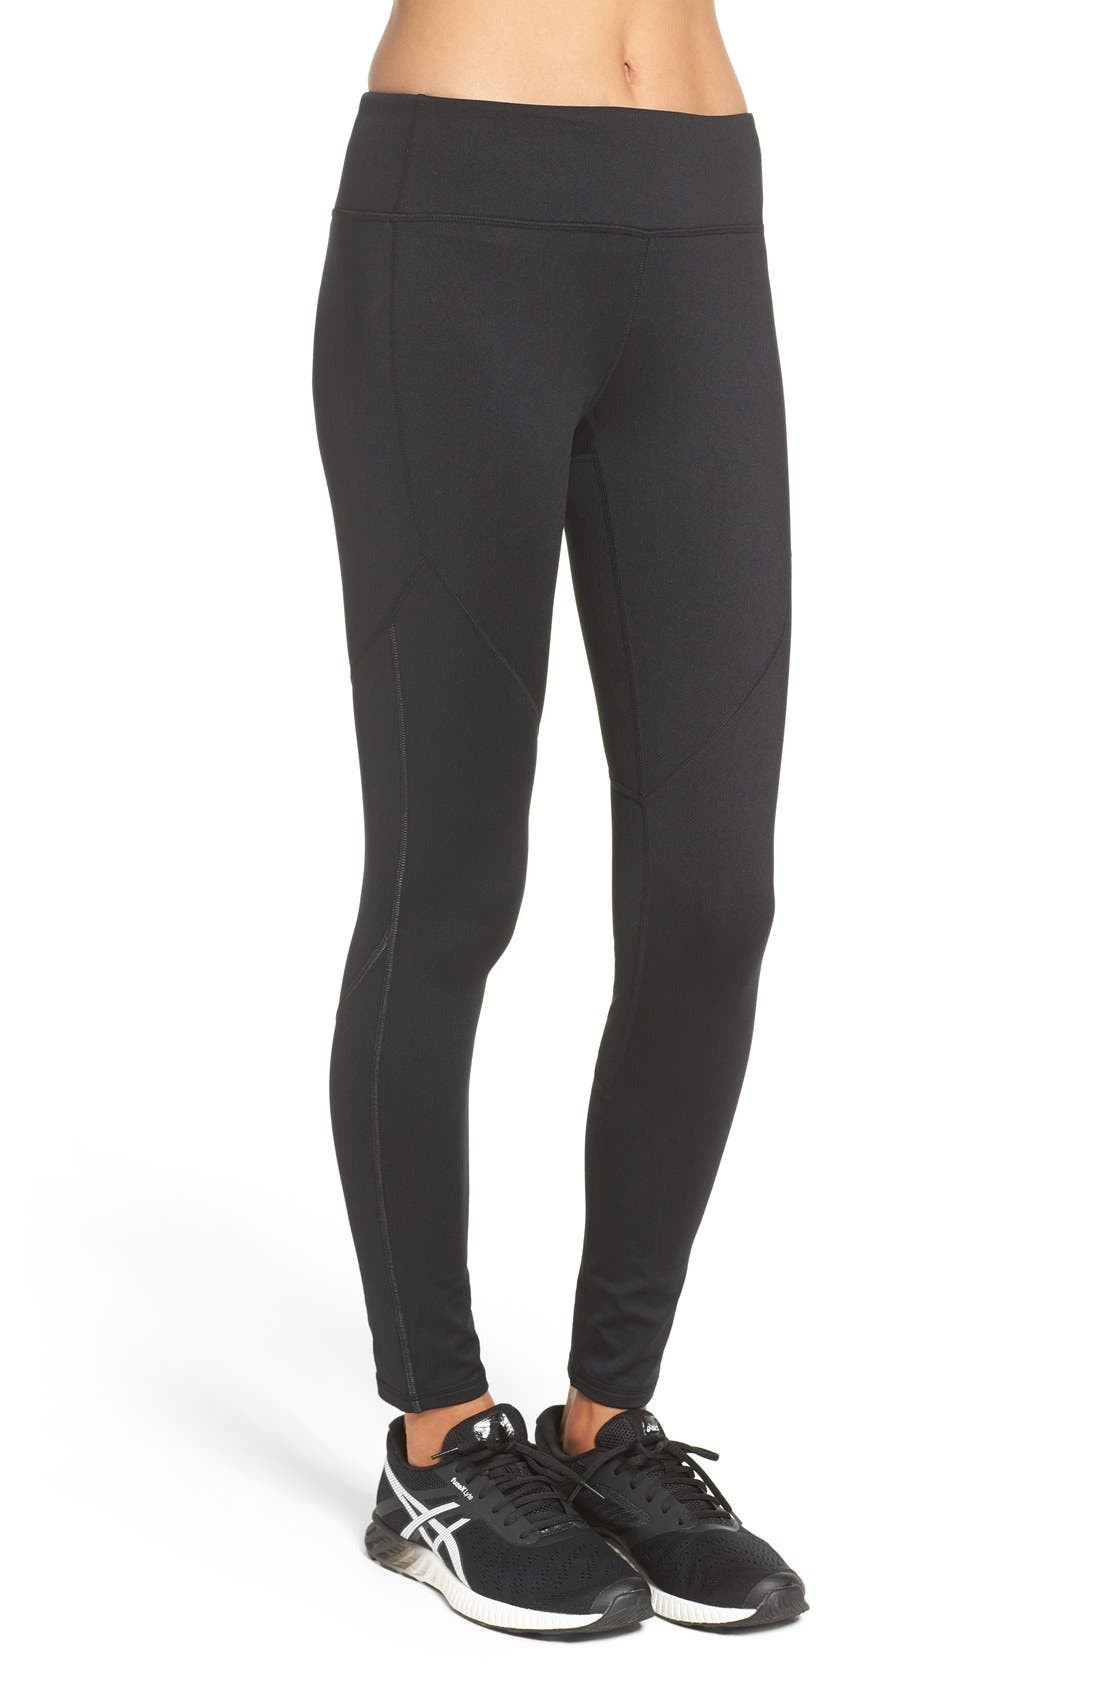 Heat It Up Running Tights,                             Alternate thumbnail 4, color,